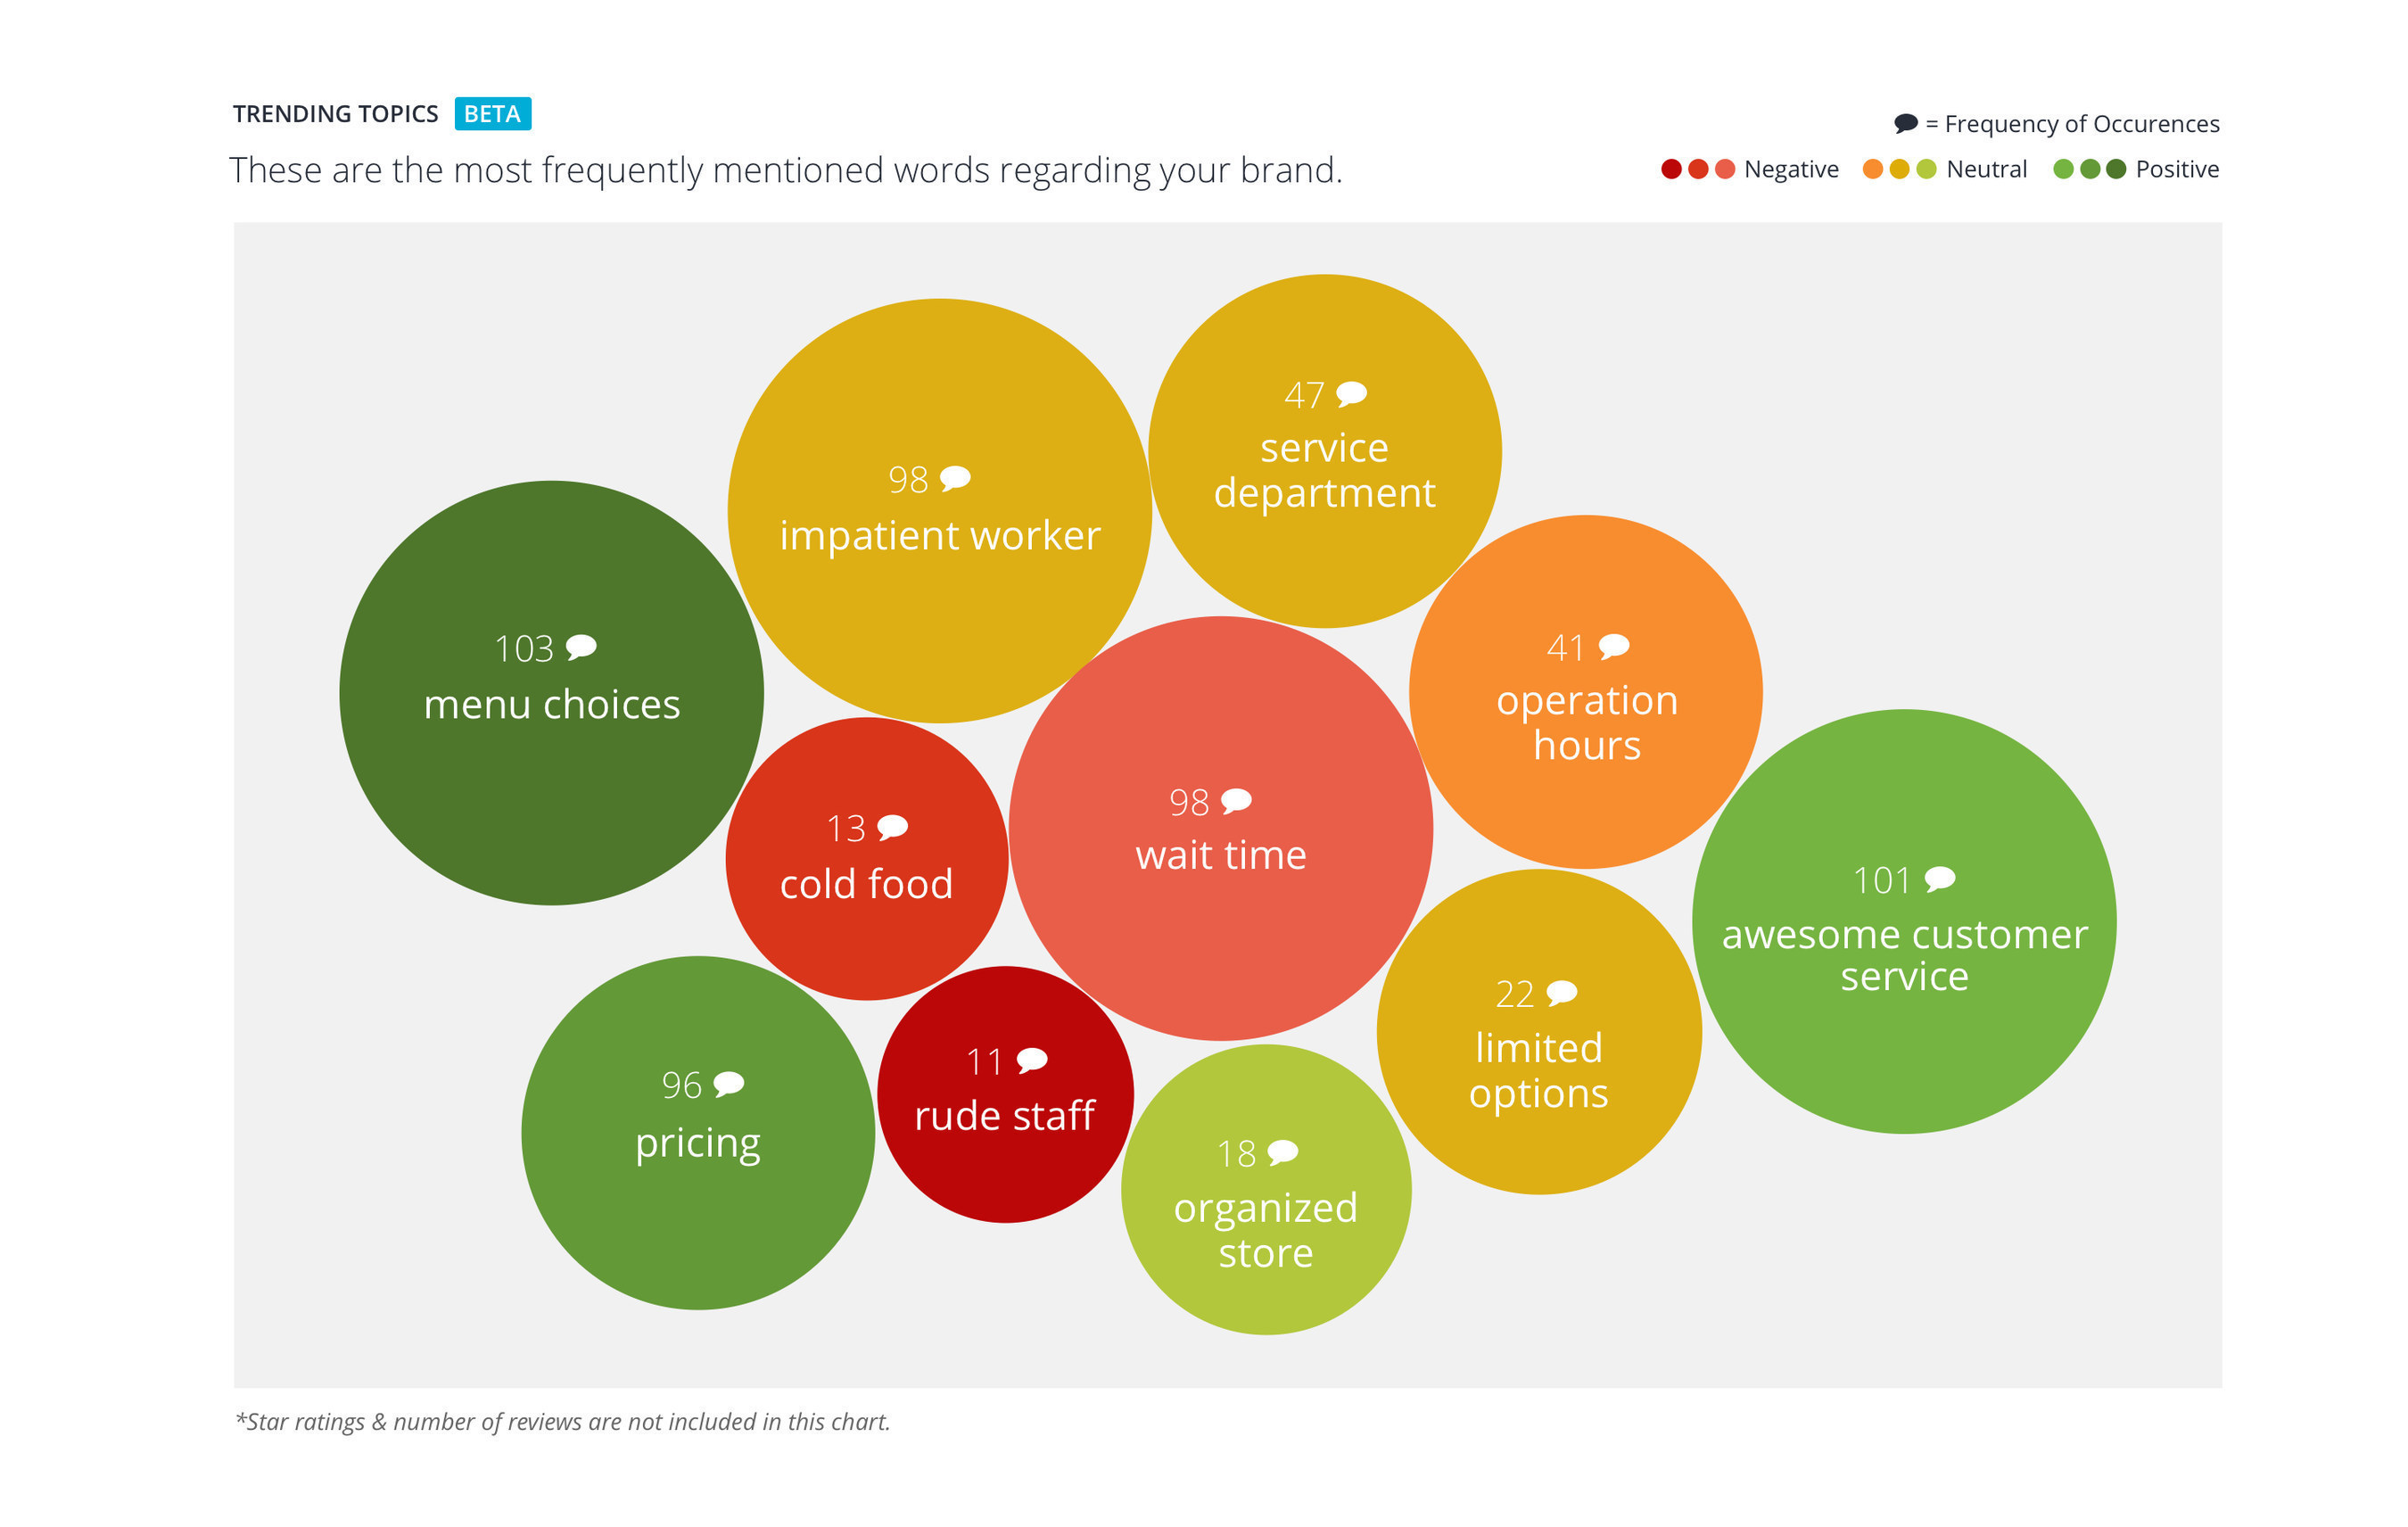 ReviewTrackers Reveals Hidden Customer Insights With Trending Topics Feature